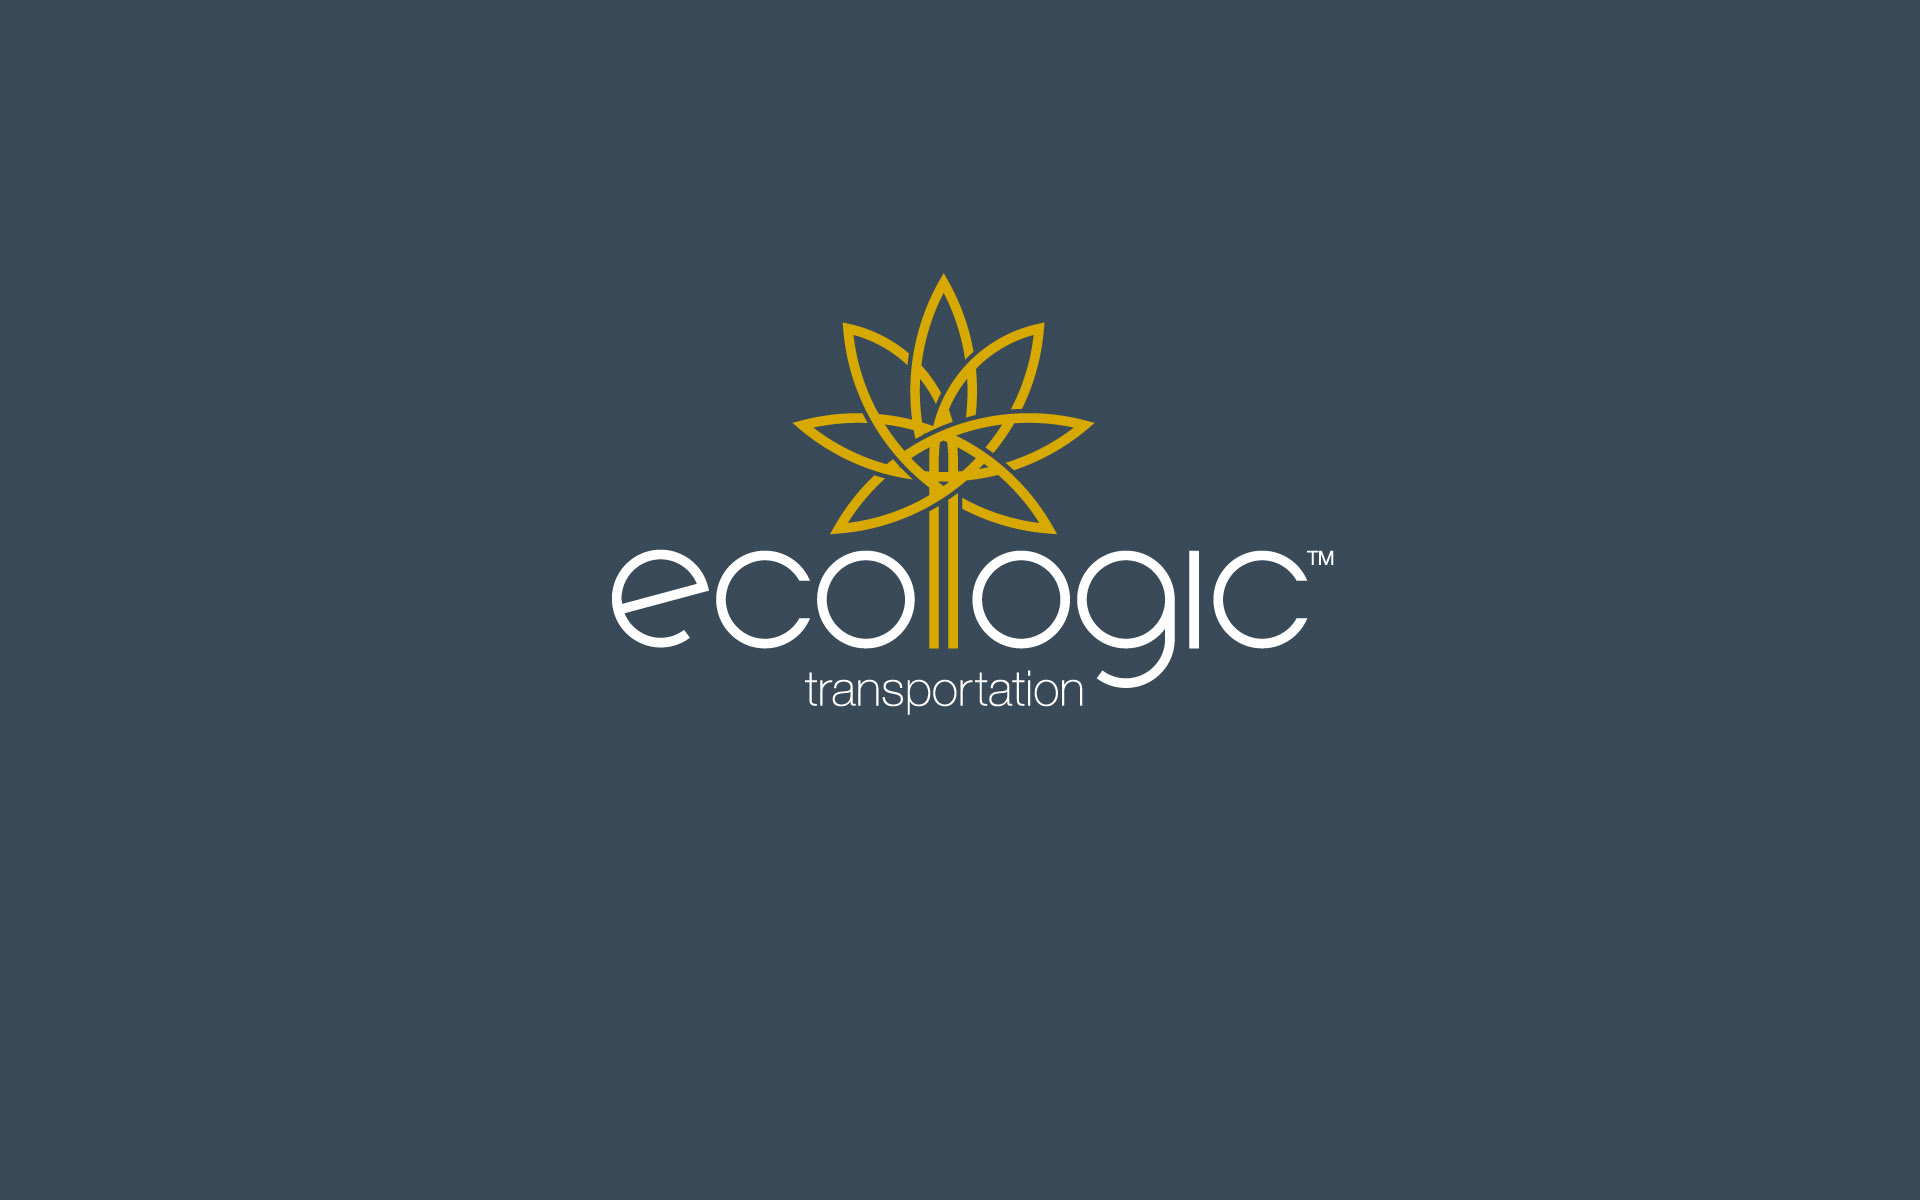 Ecologic Transportation Brand Identity